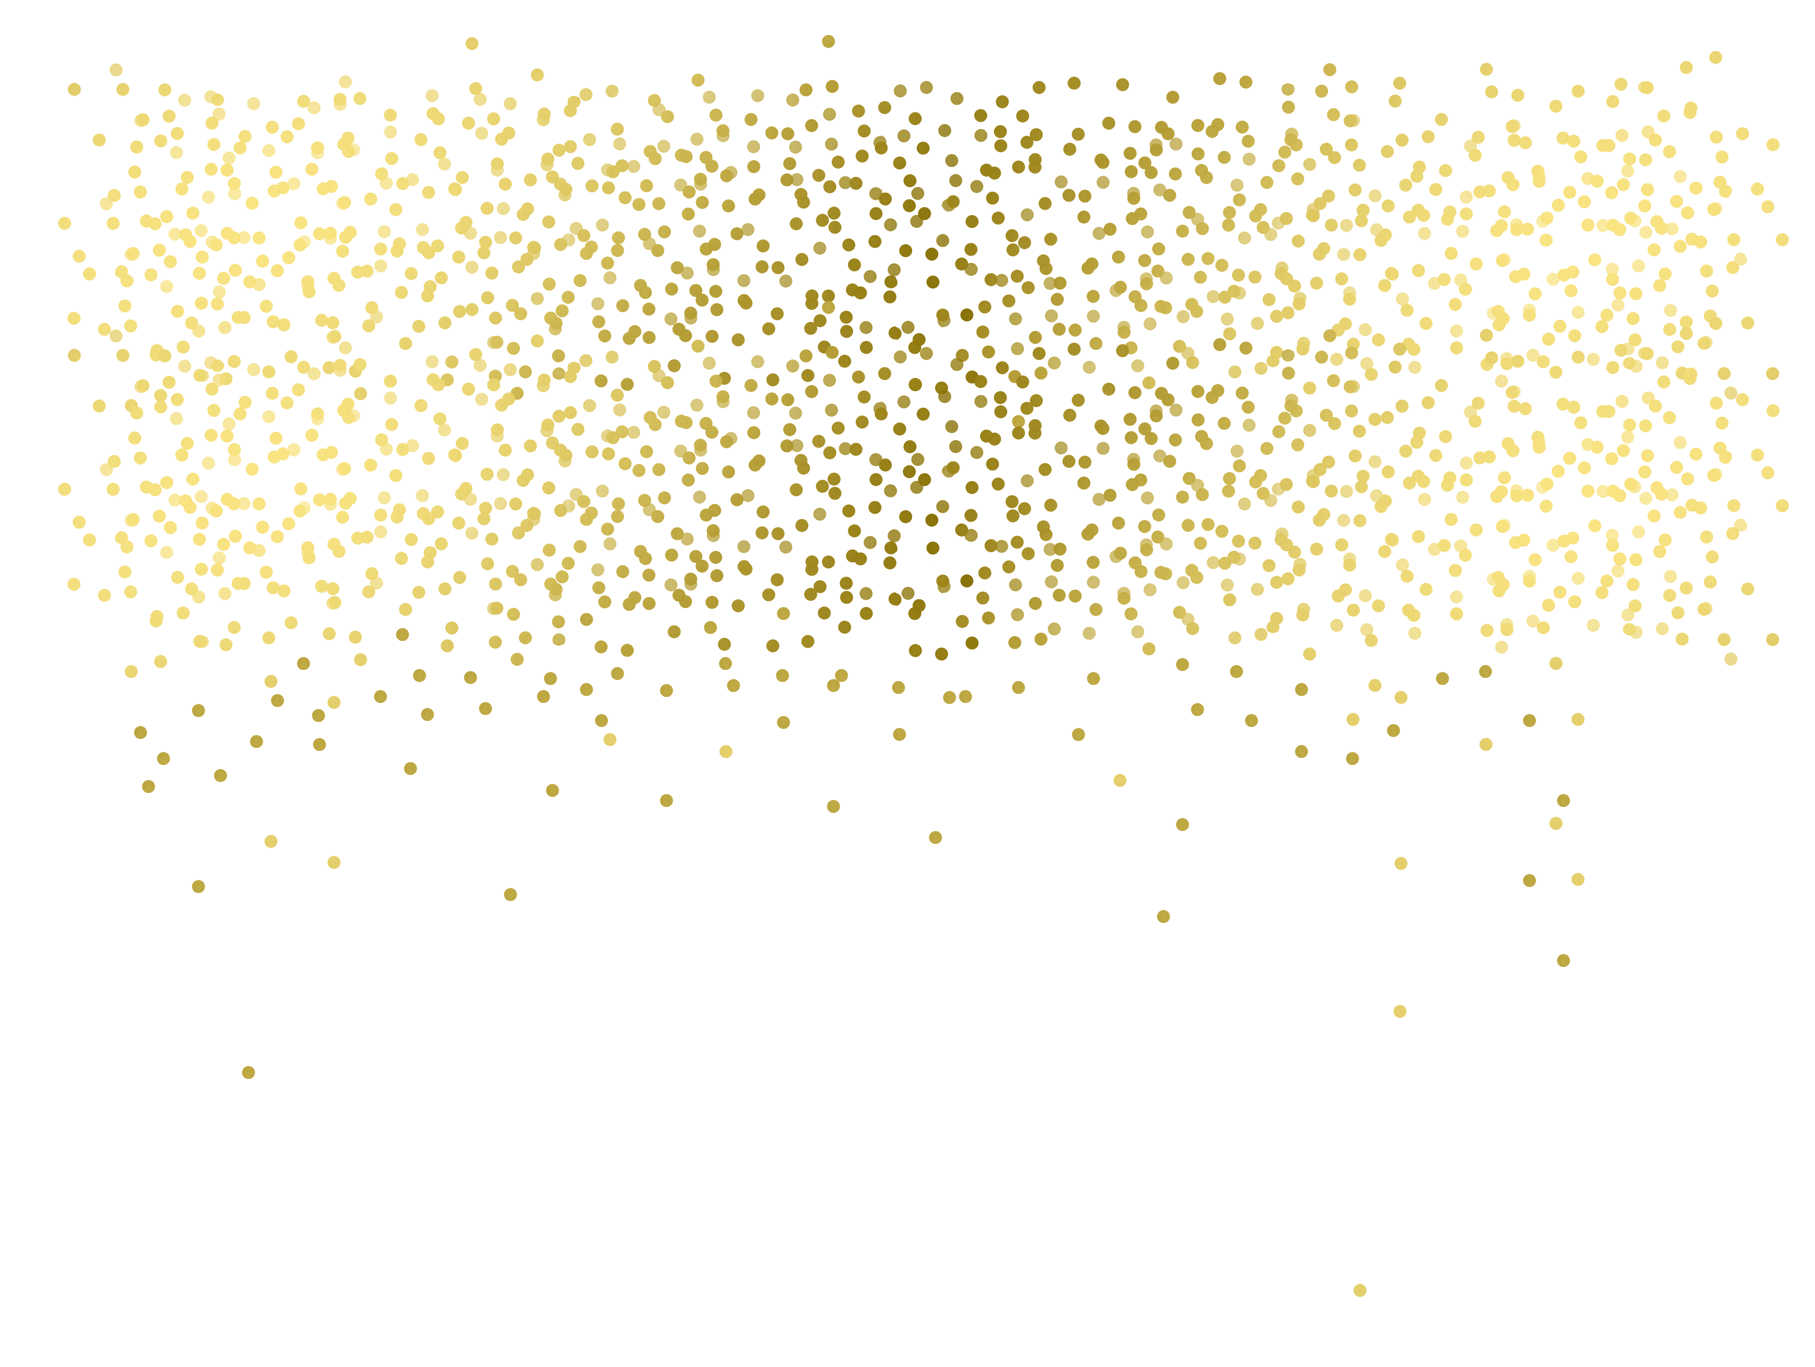 Gold confetti falling transparent png. Design printabell create home